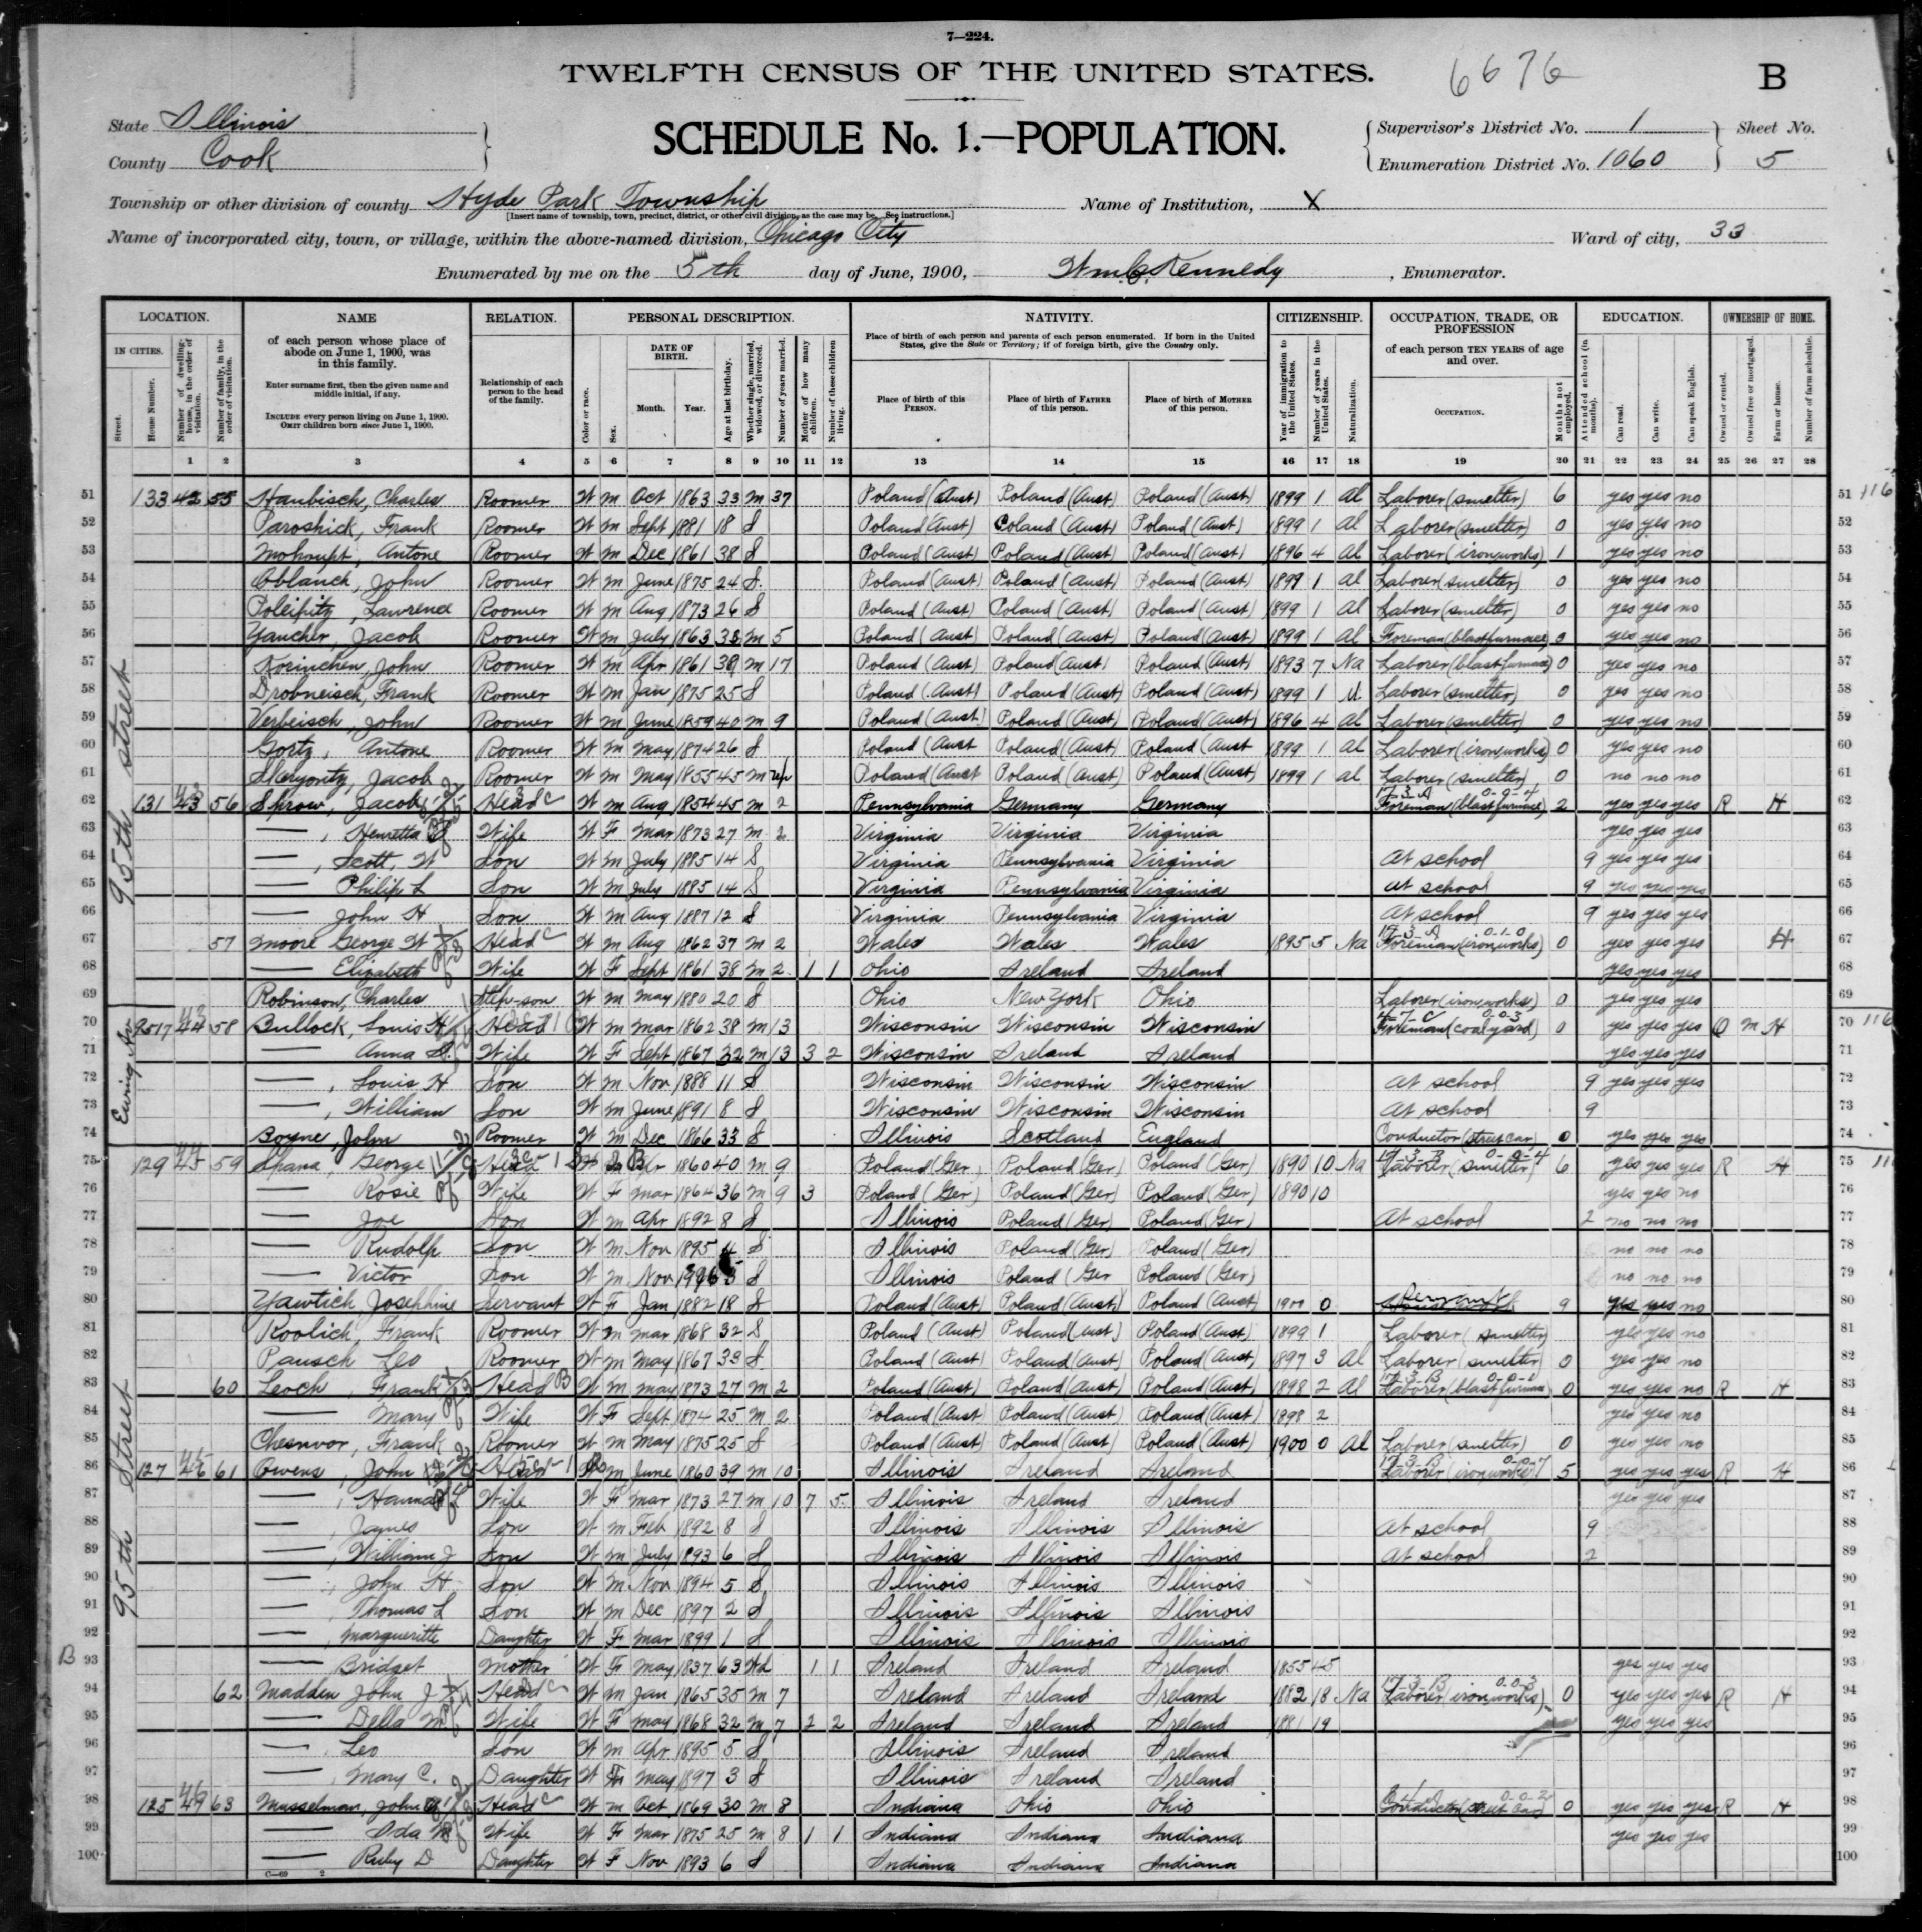 Illinois: COOK County, Enumeration District 1060, Sheet No. 5B